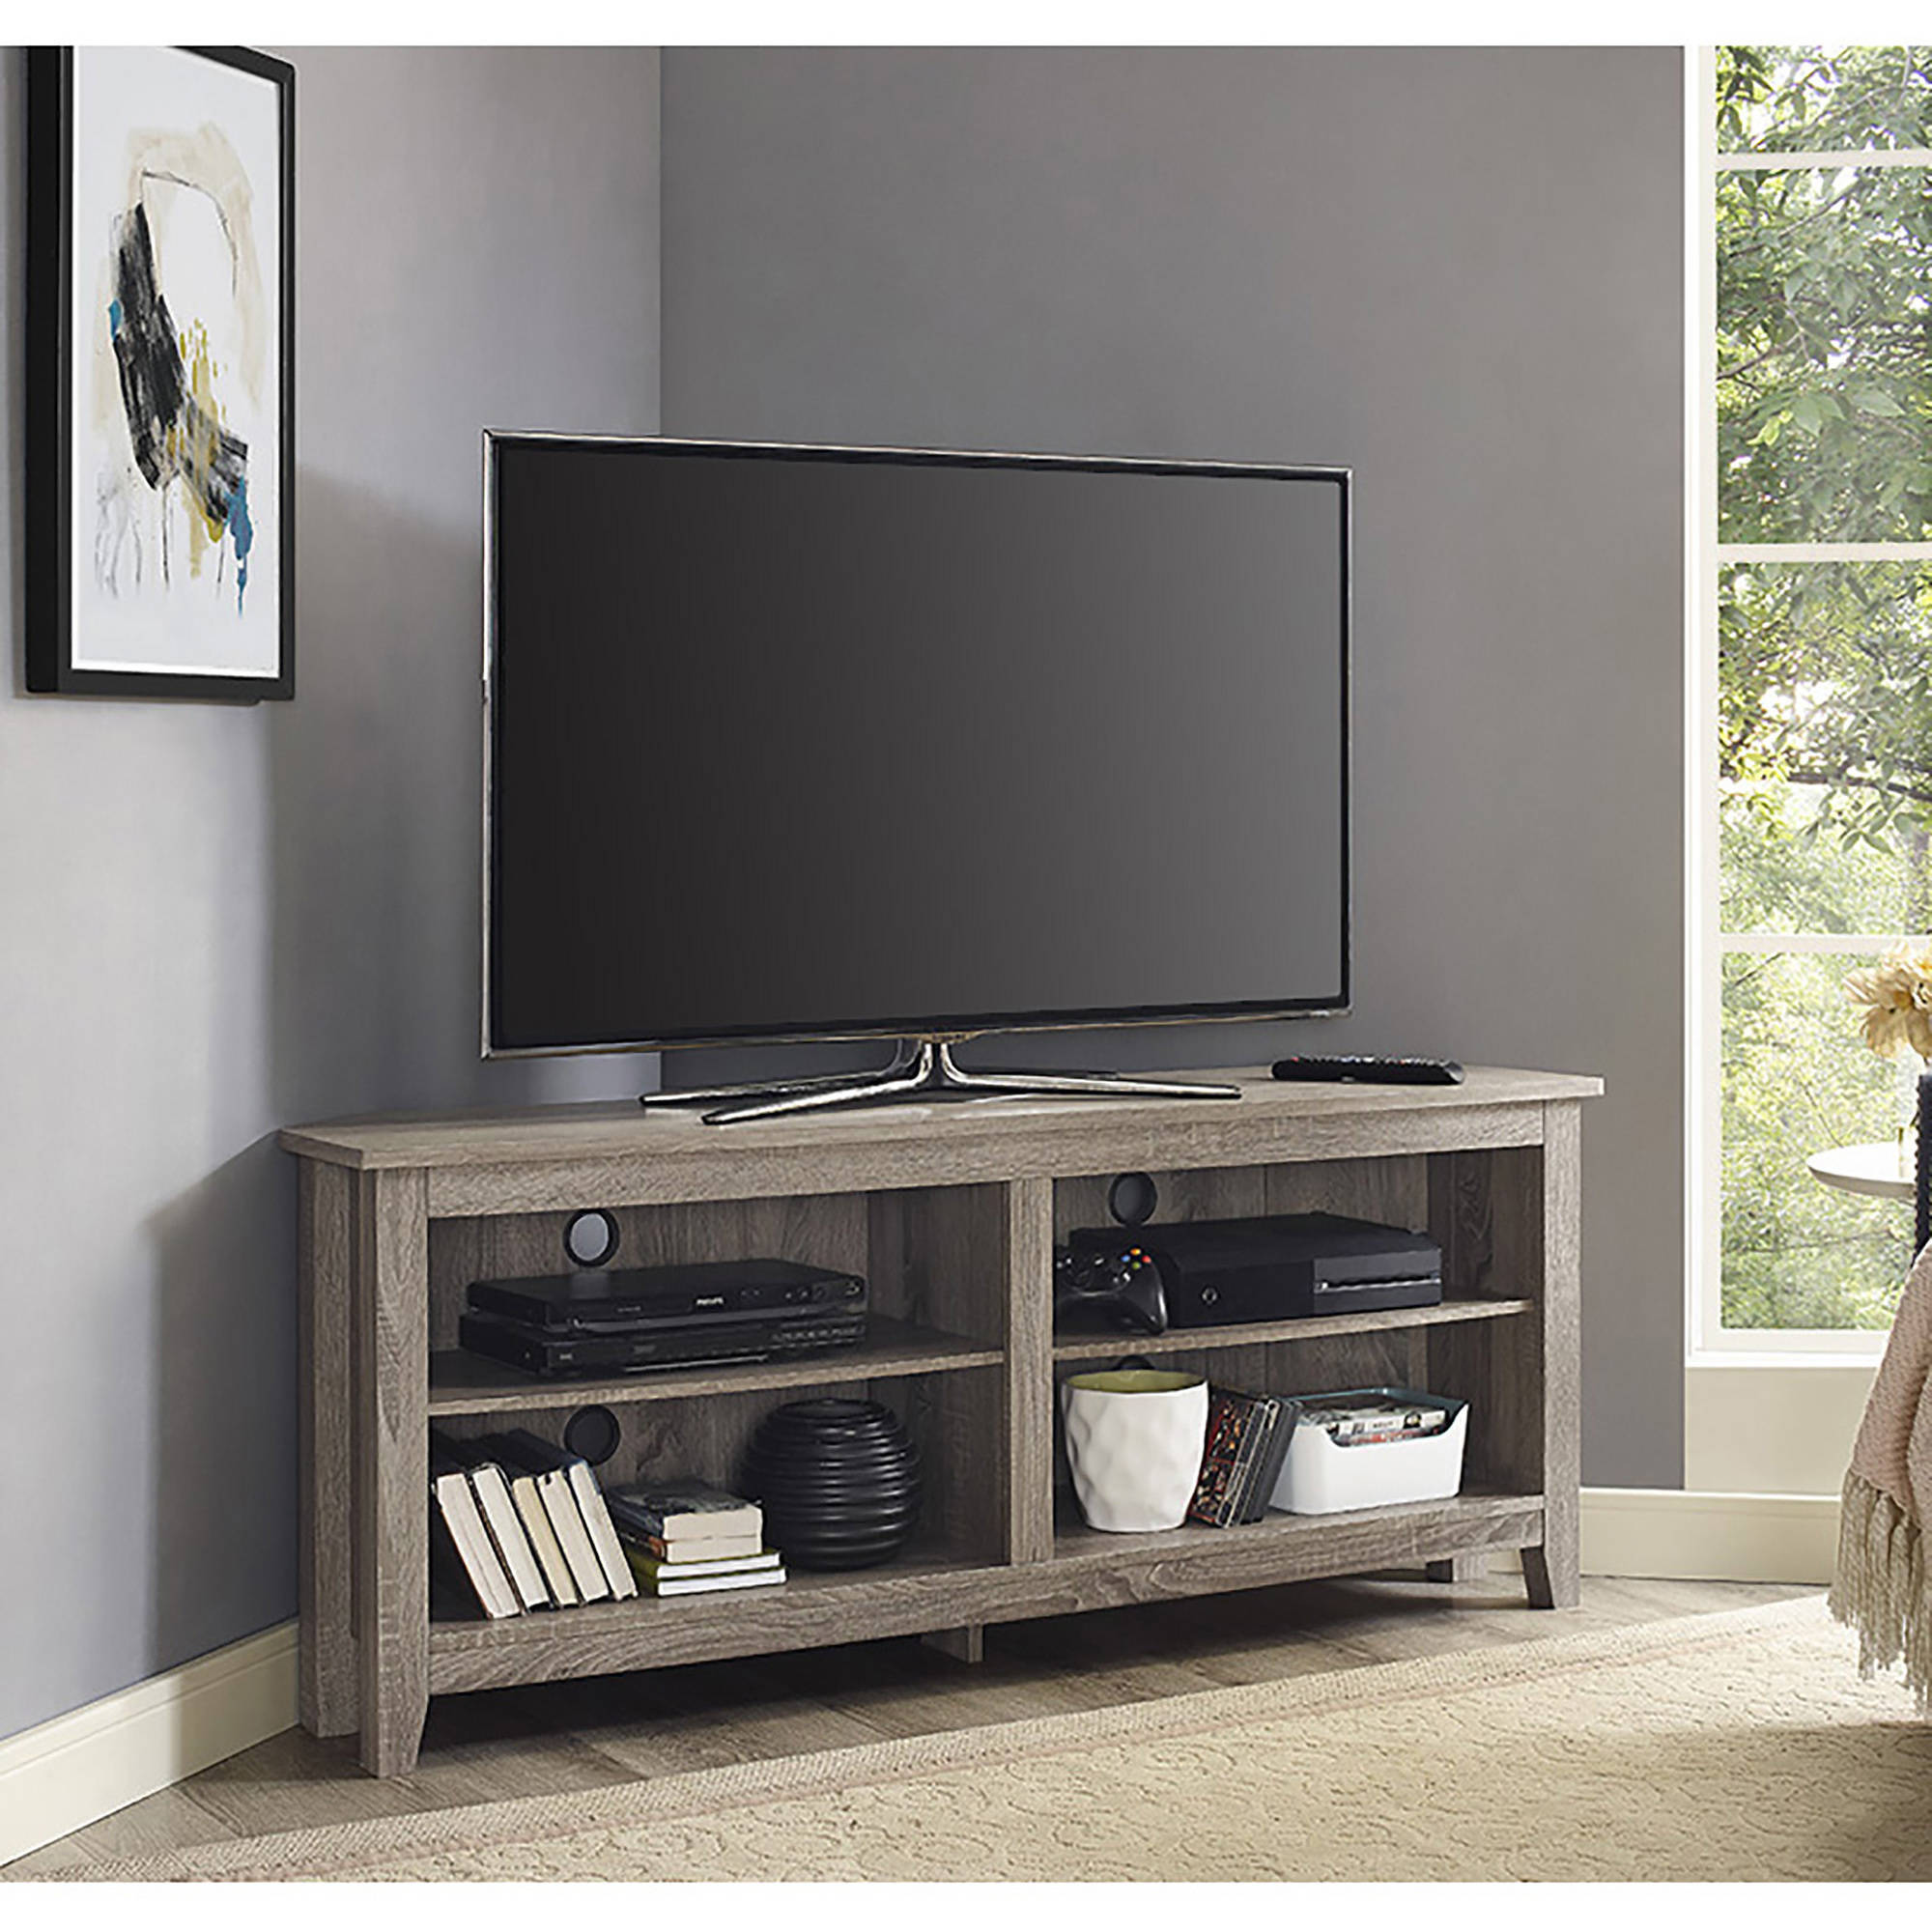 Driftwood TV Stand for TVs up to 60